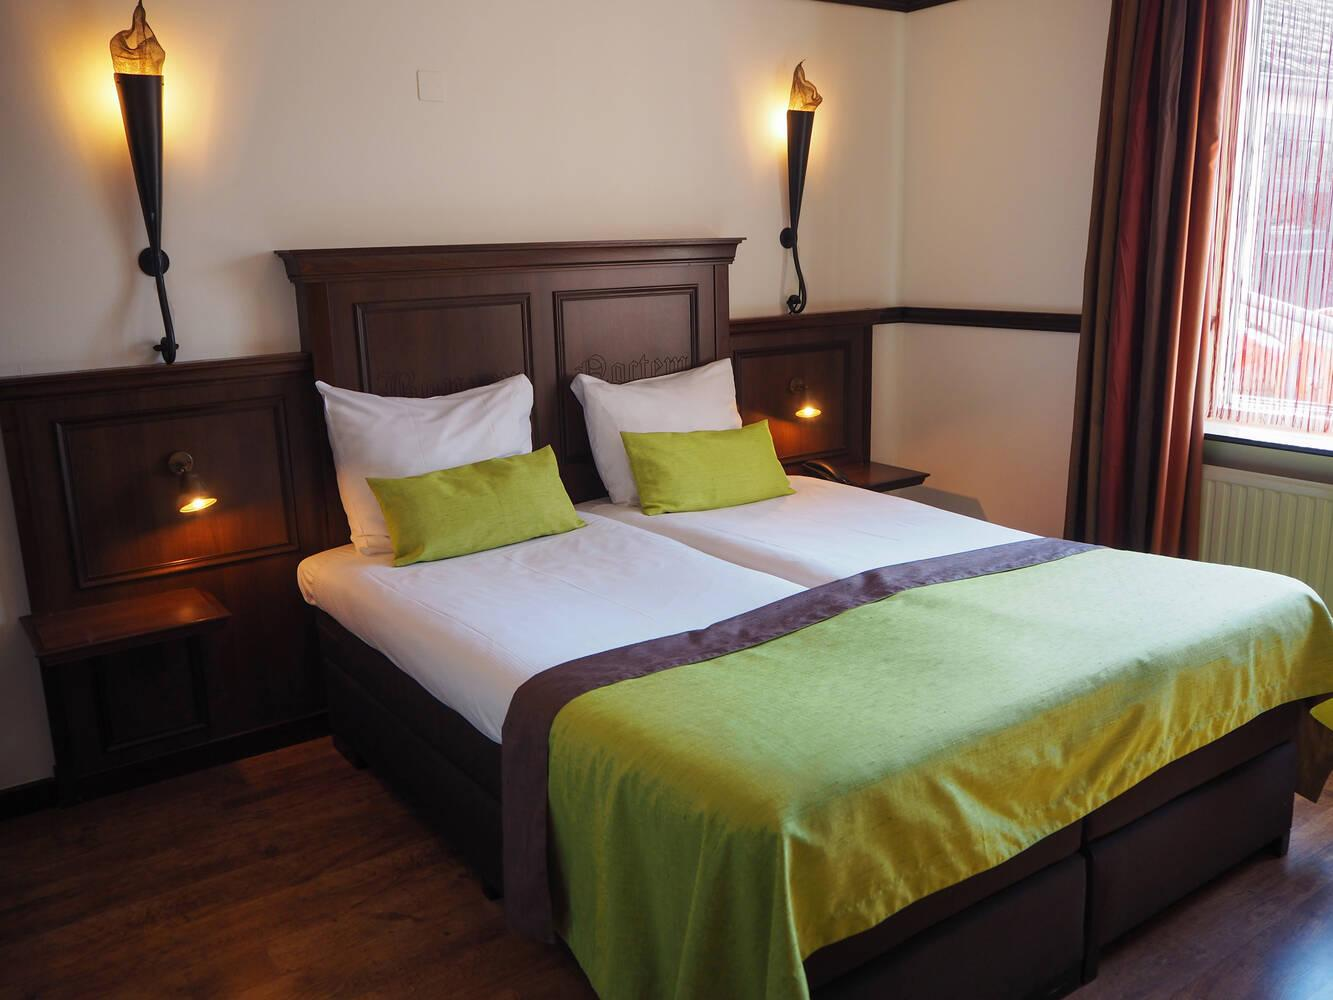 Abbey Room - A unique stay in Drenthe surrounded by beautiful nature